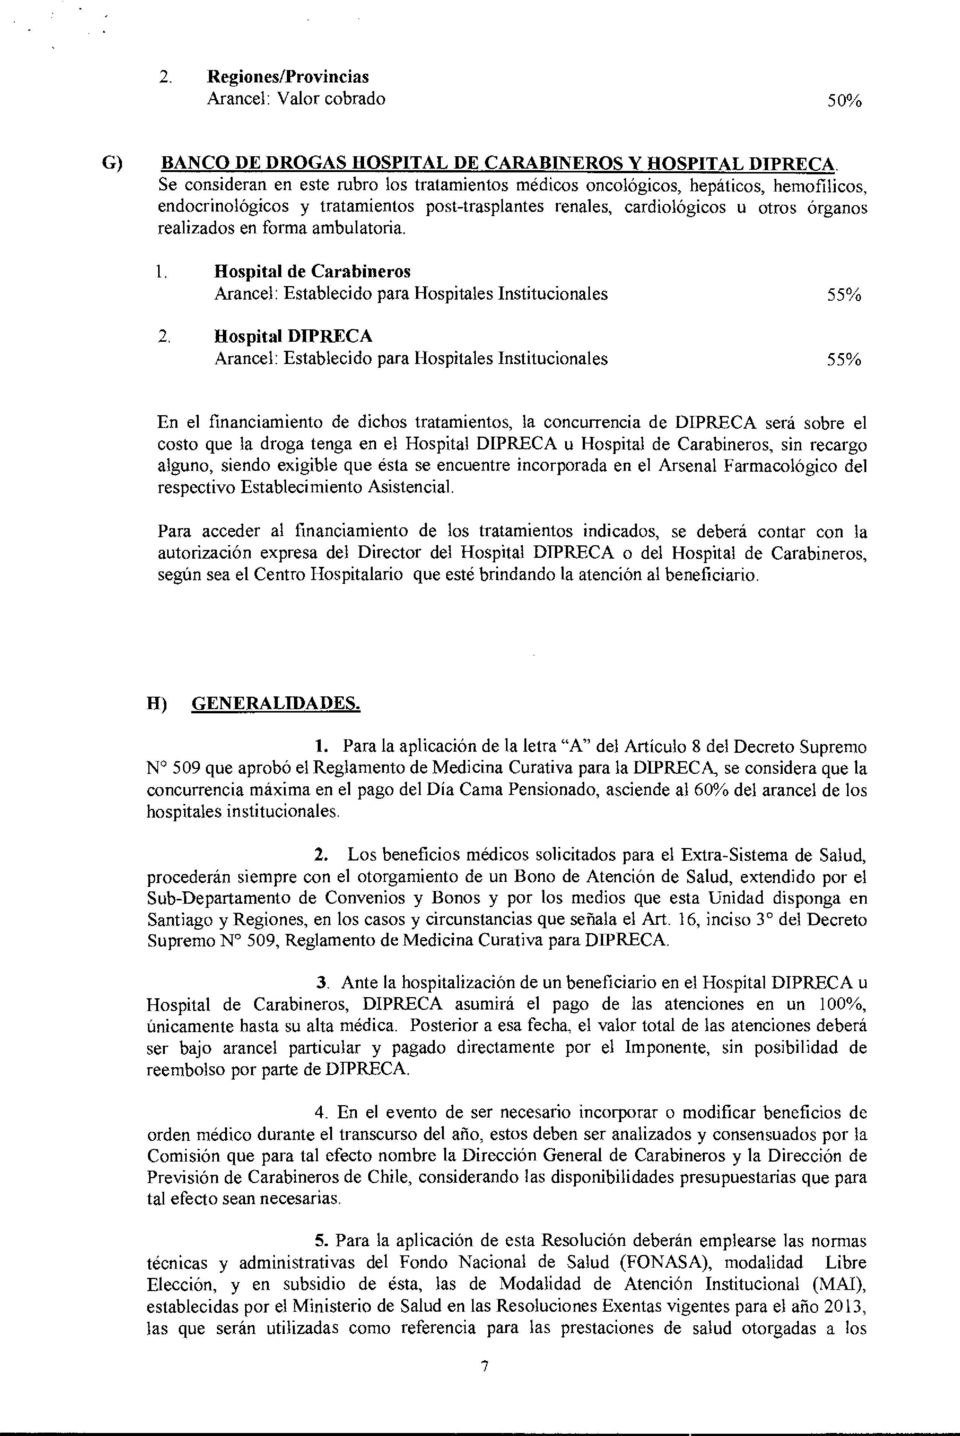 ambulatoria. Hospital de Carabineros Arancel: Establecido para Hospitales Institucionales 55% 2.